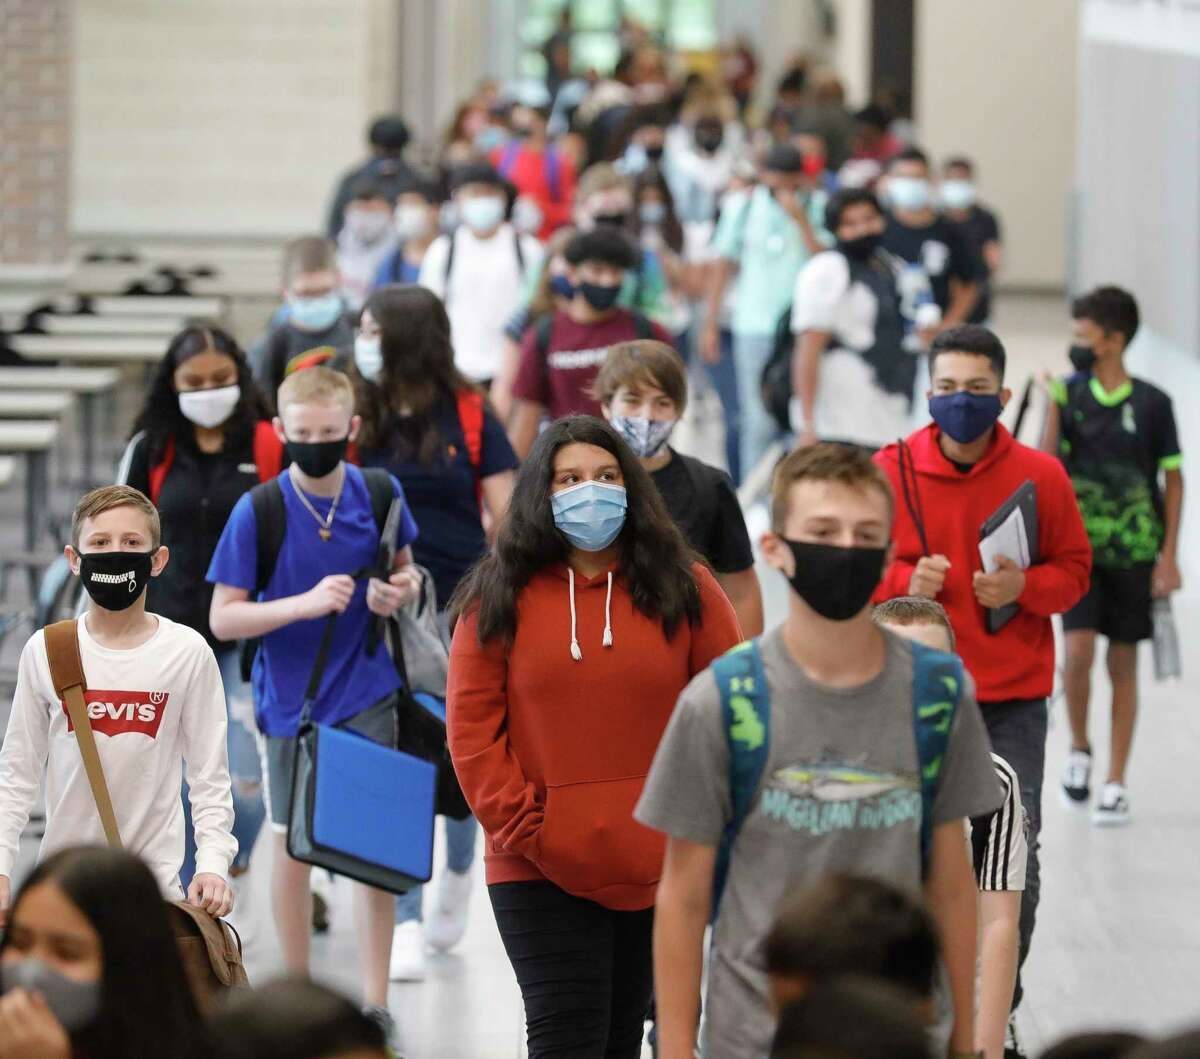 Students wear face masks while walking the hallways of Stockton Junior High School when the school first opened. Last week, a letter was sent to Stockton parents warning them about a new TikTok trend that challenges students to steal school property and post a video of their theft on the video app.